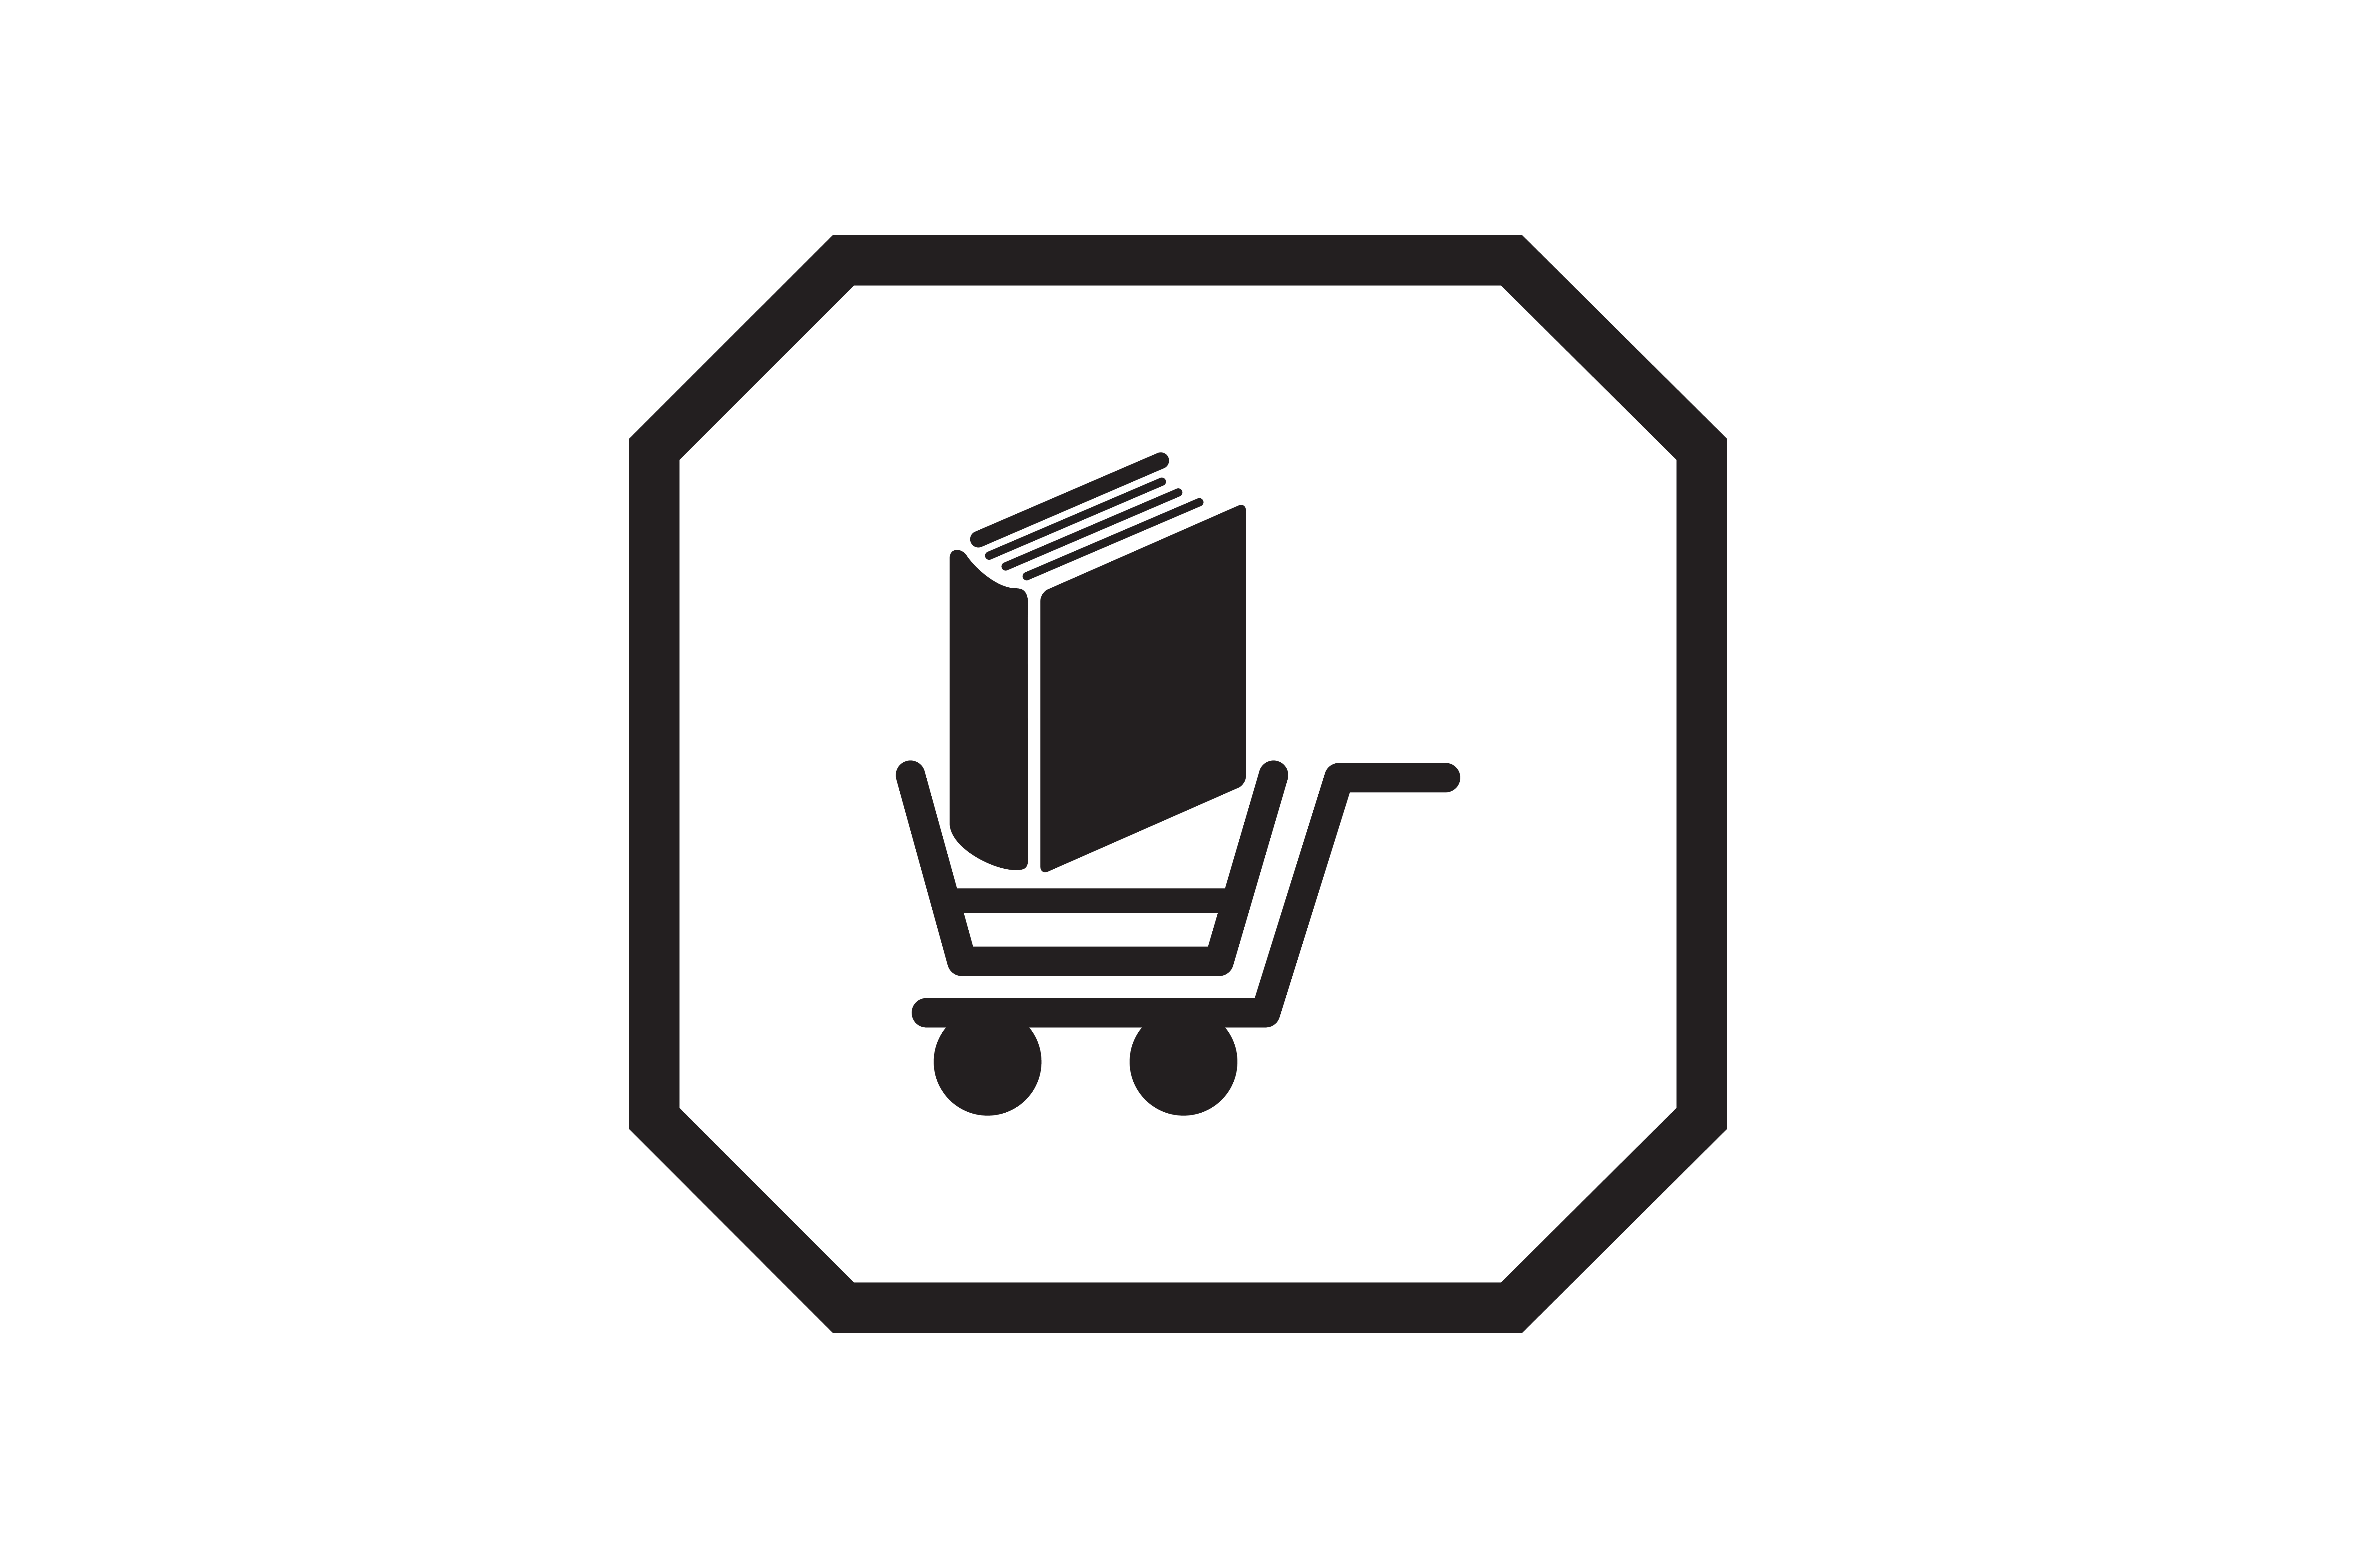 Download Free Books Icon Creative Fabrica for Cricut Explore, Silhouette and other cutting machines.